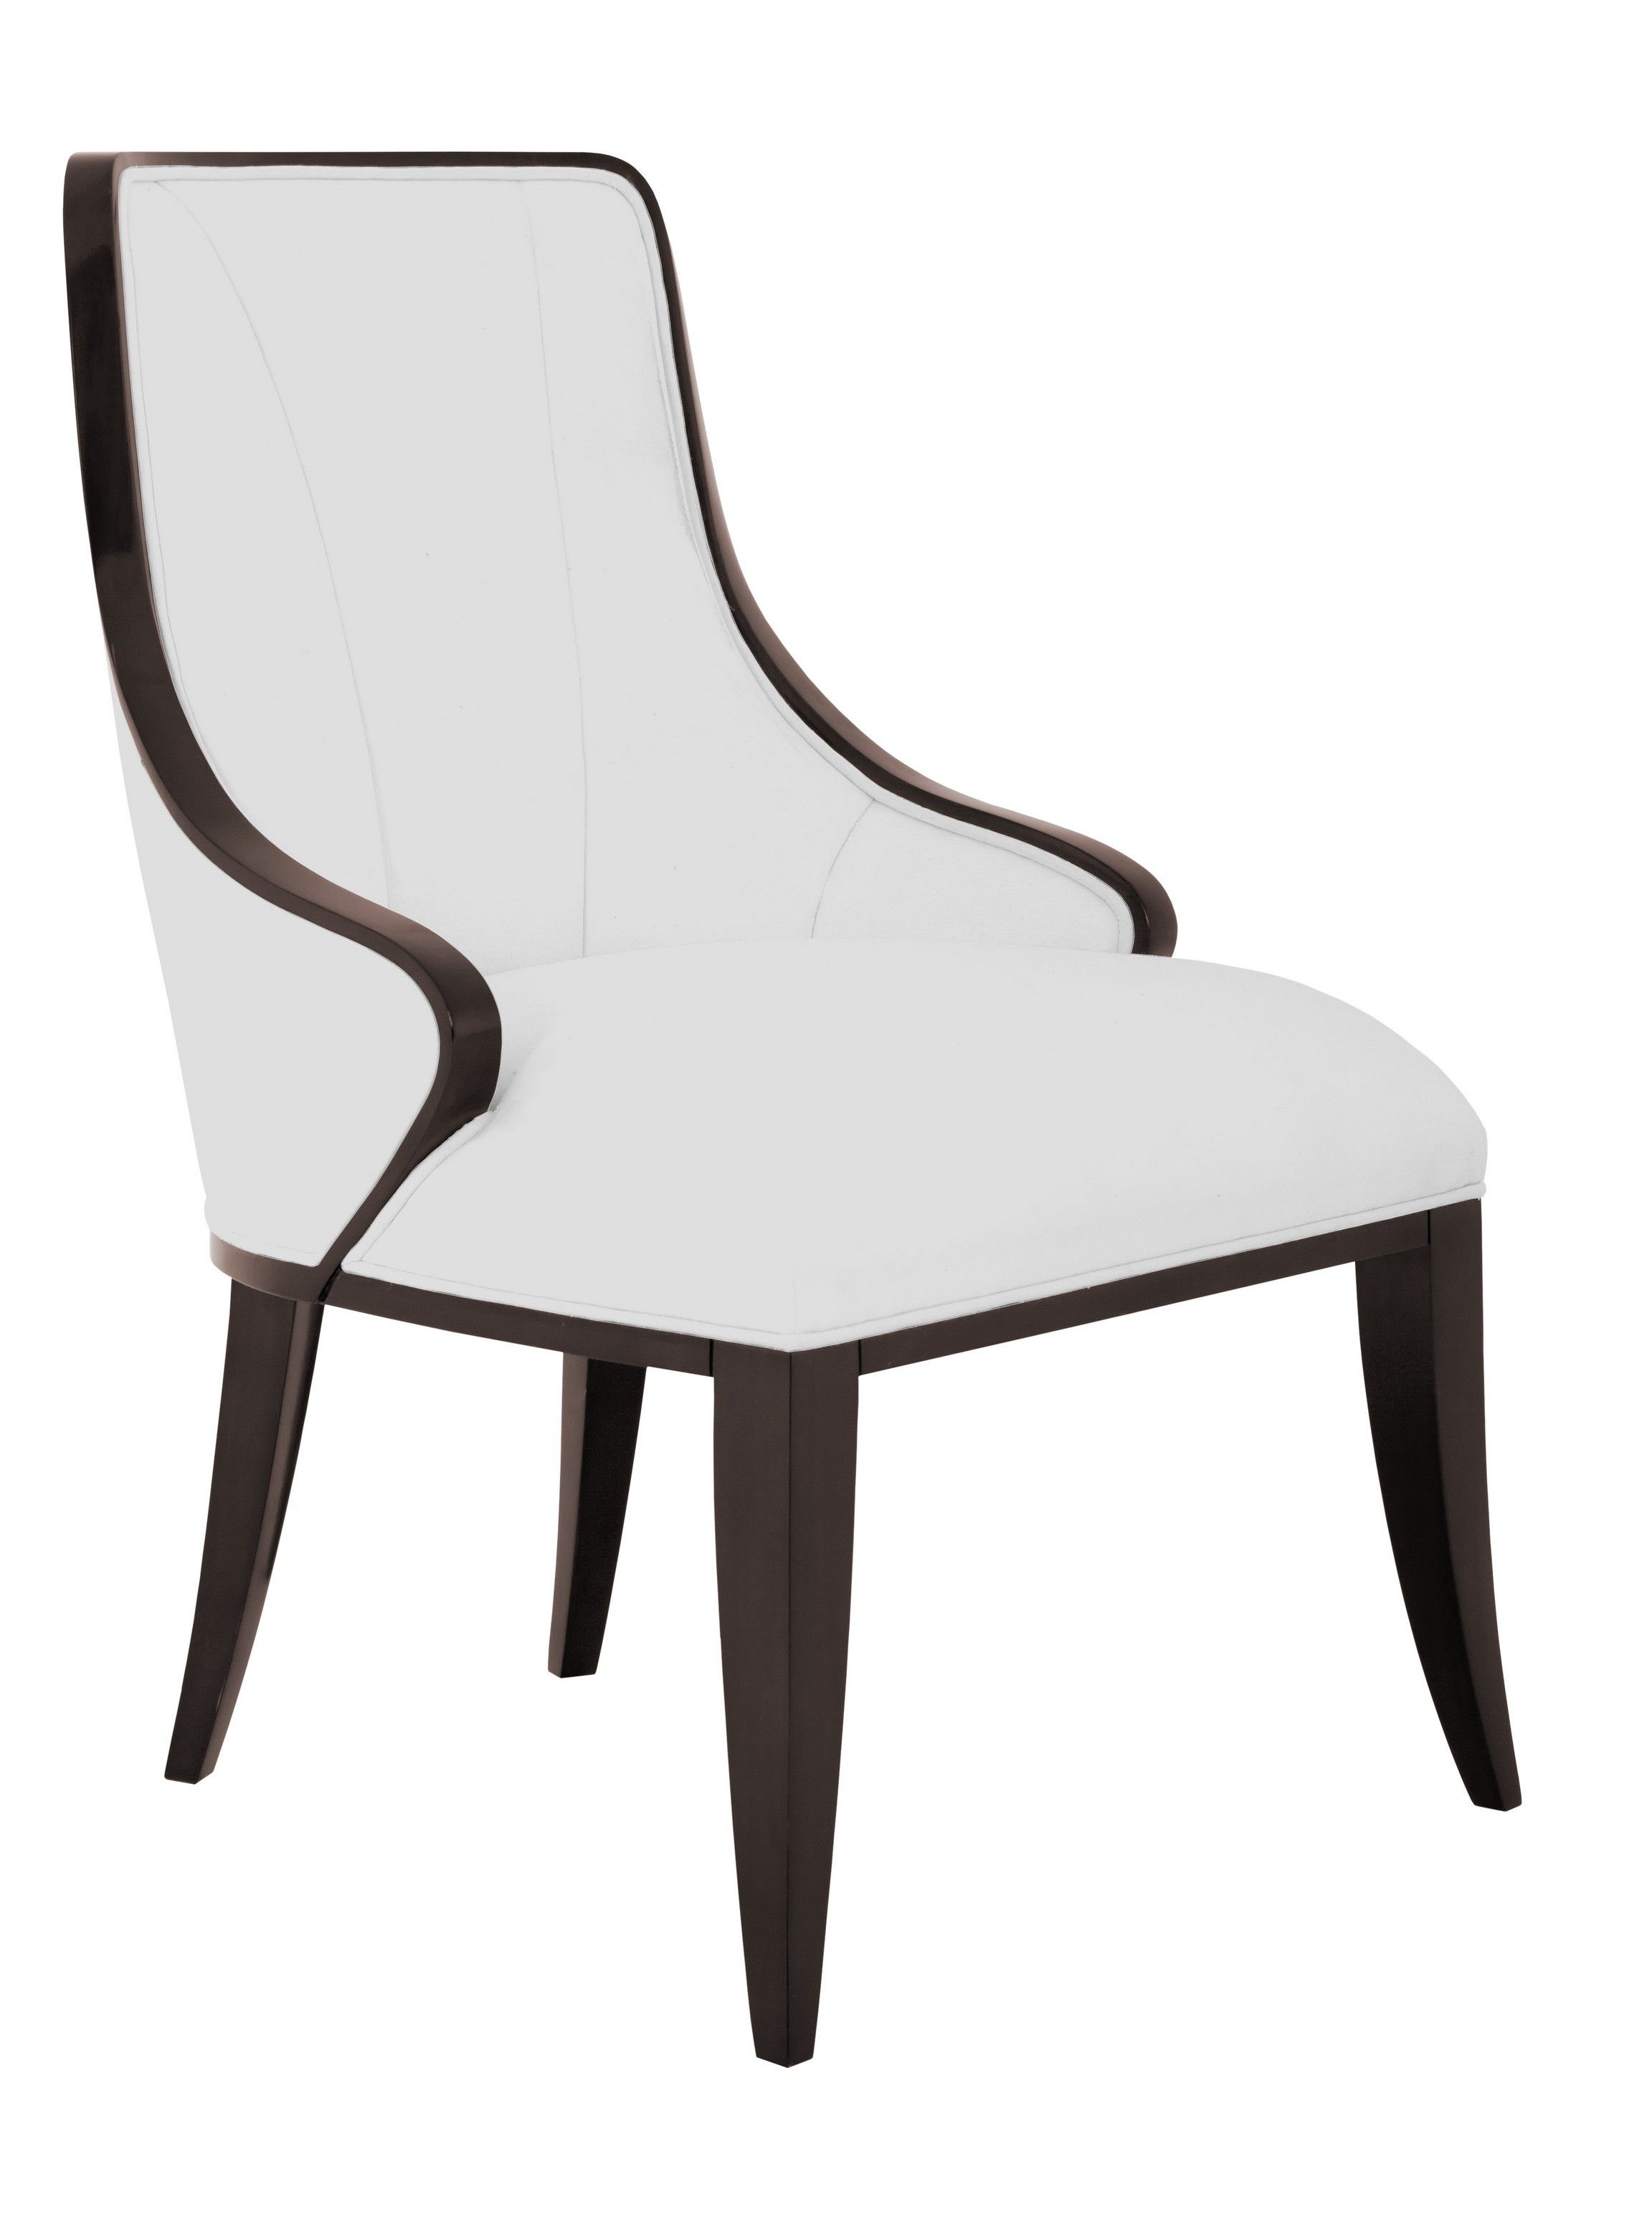 Sherborne Dining Chairs Chairs Dining Chairs Dining Chair Upholstery Furniture